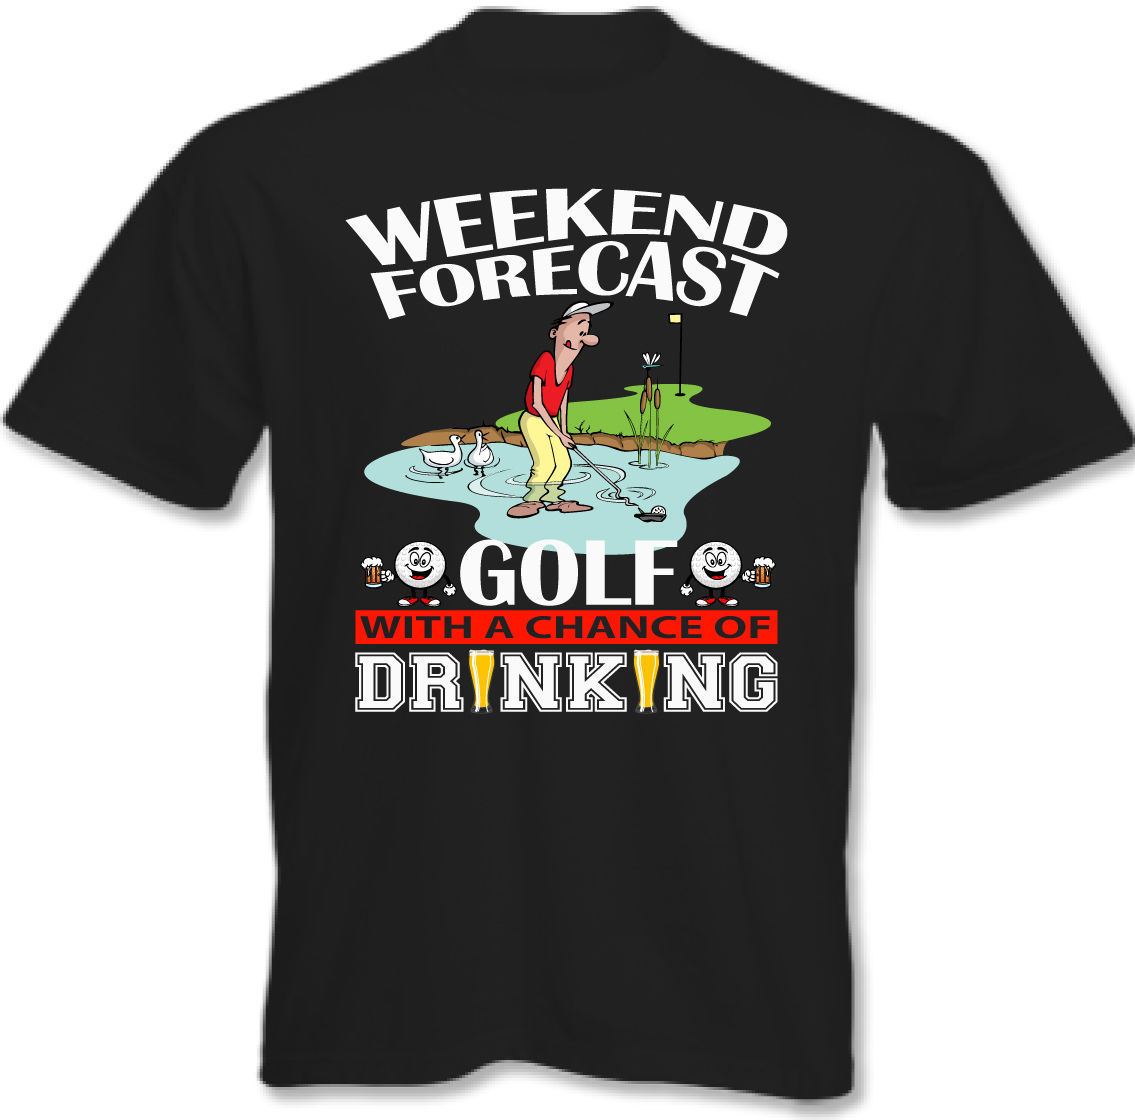 FIN DE SEMANA prevision GOLF BEBIDA - Camiseta Hombre Club Bolso Putter Short Sleeve Round Neck T Shirt Promotion